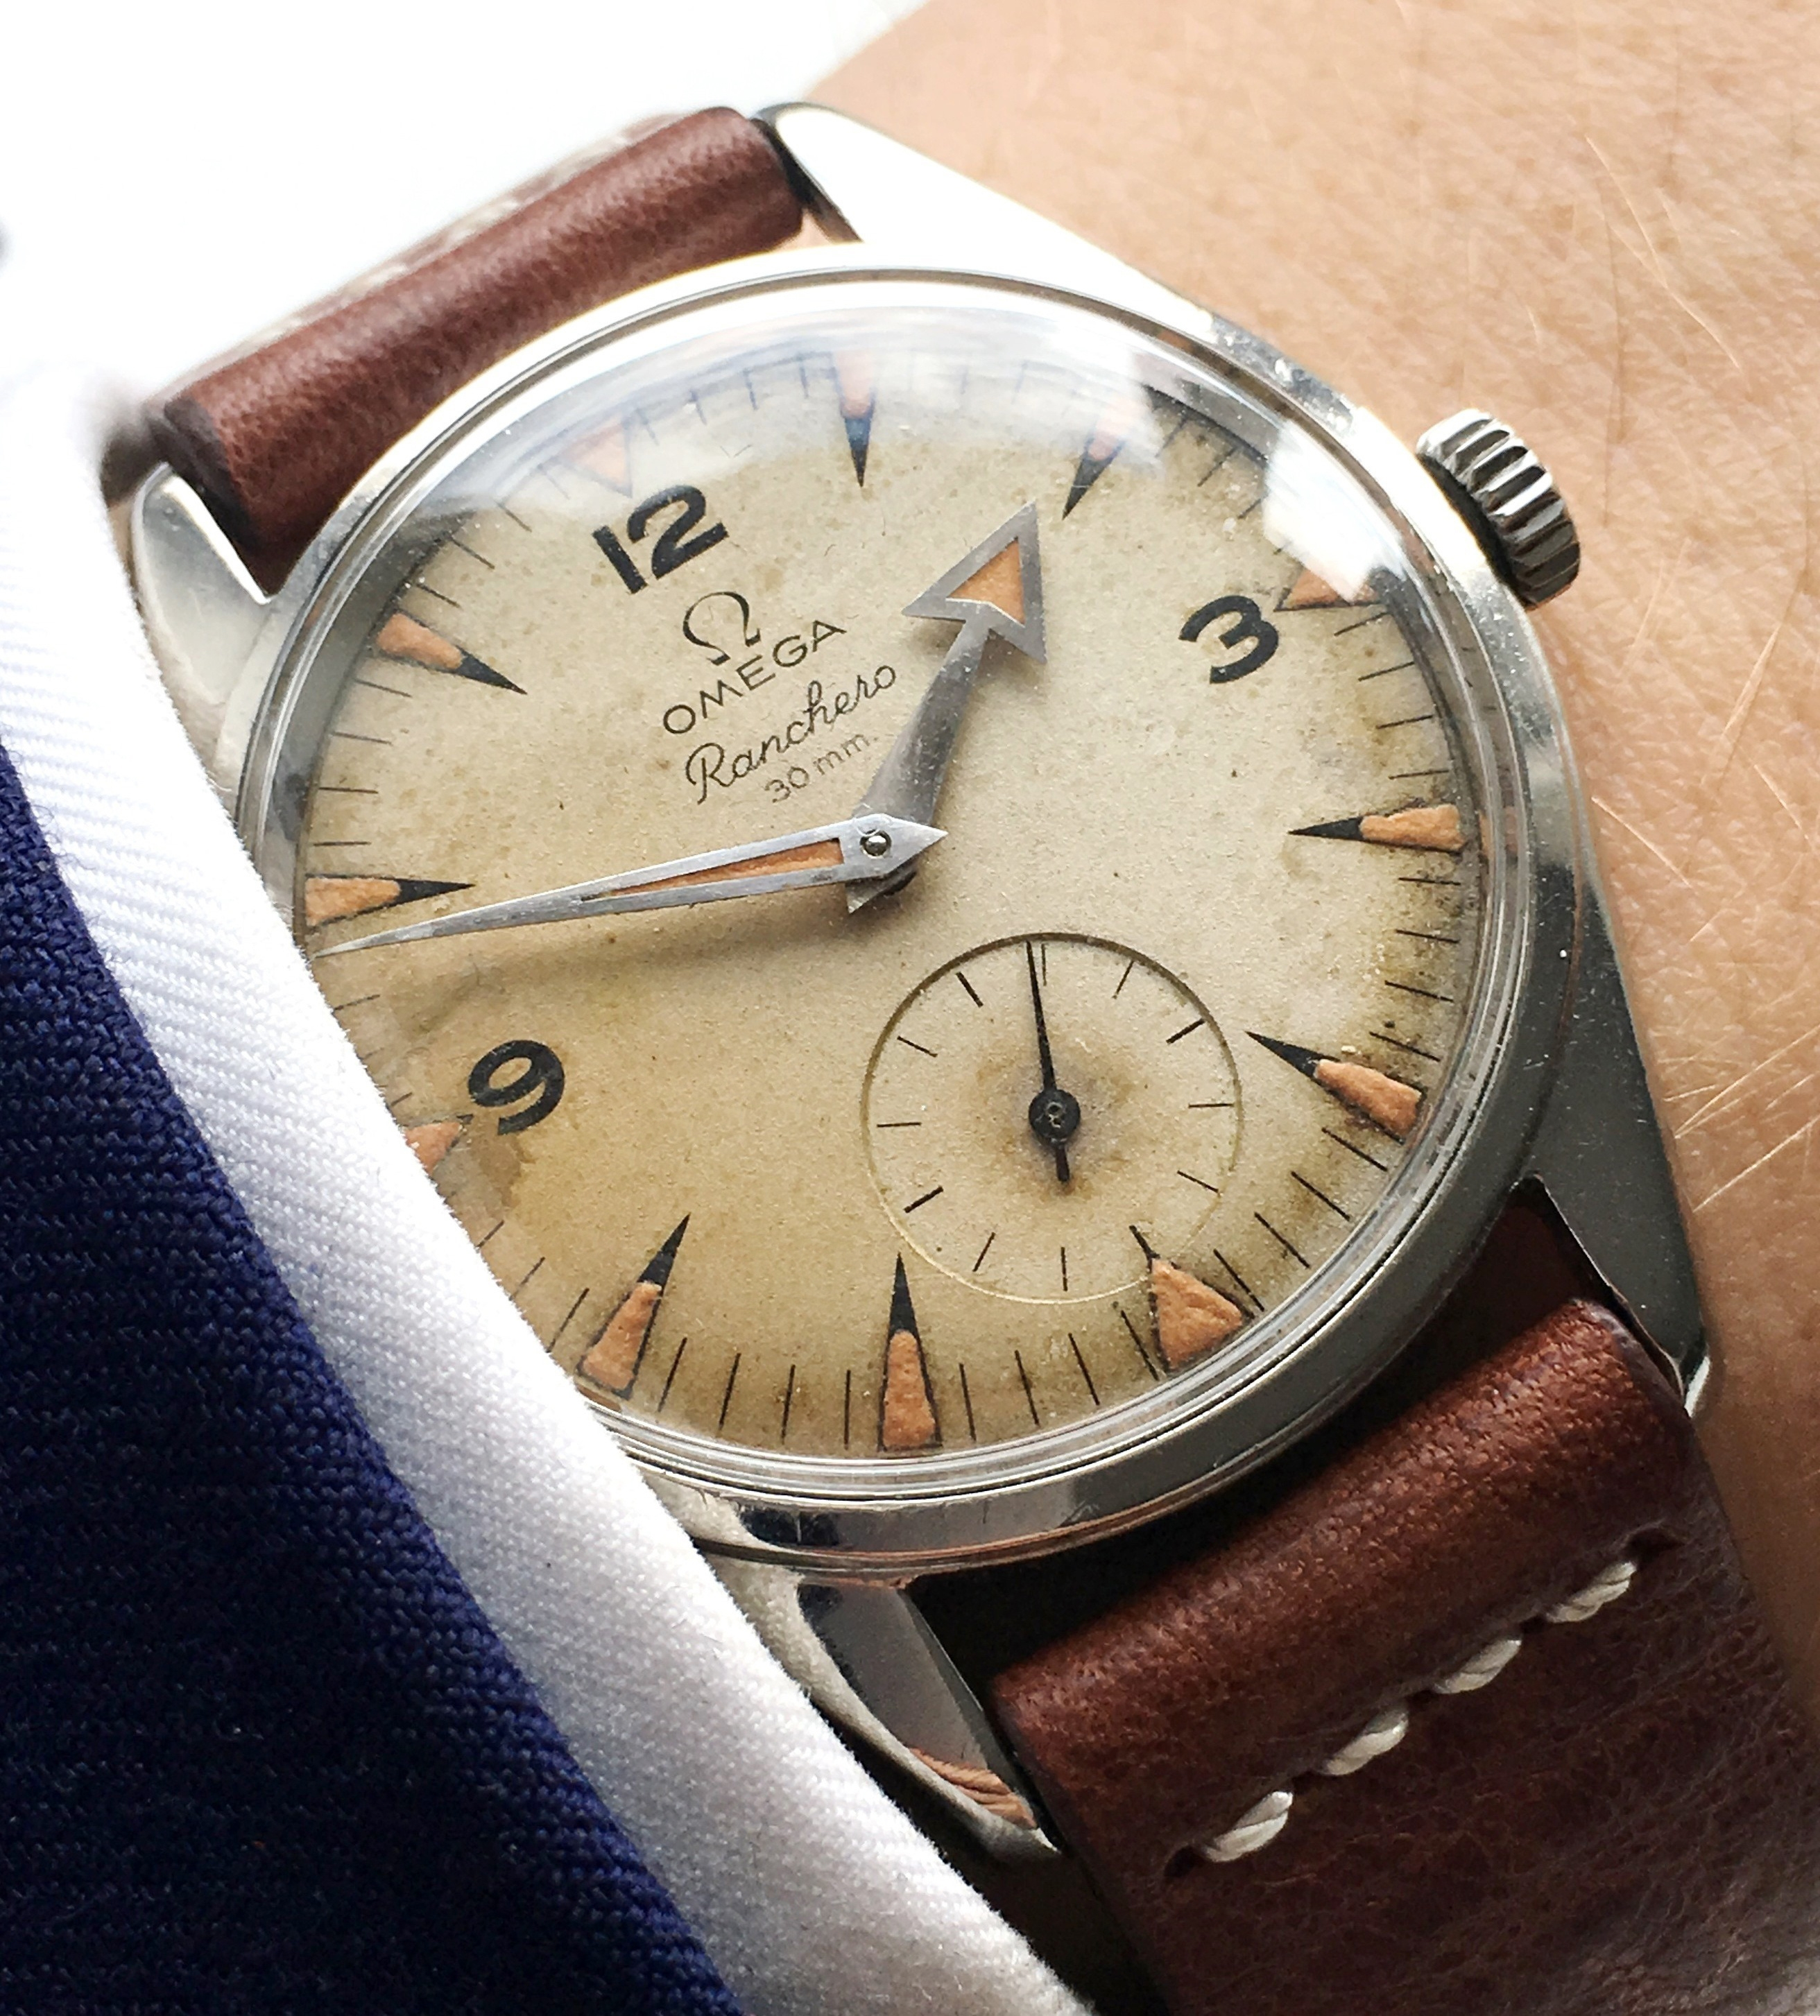 Factory Original Omega Ranchero Vintage Cream Dial